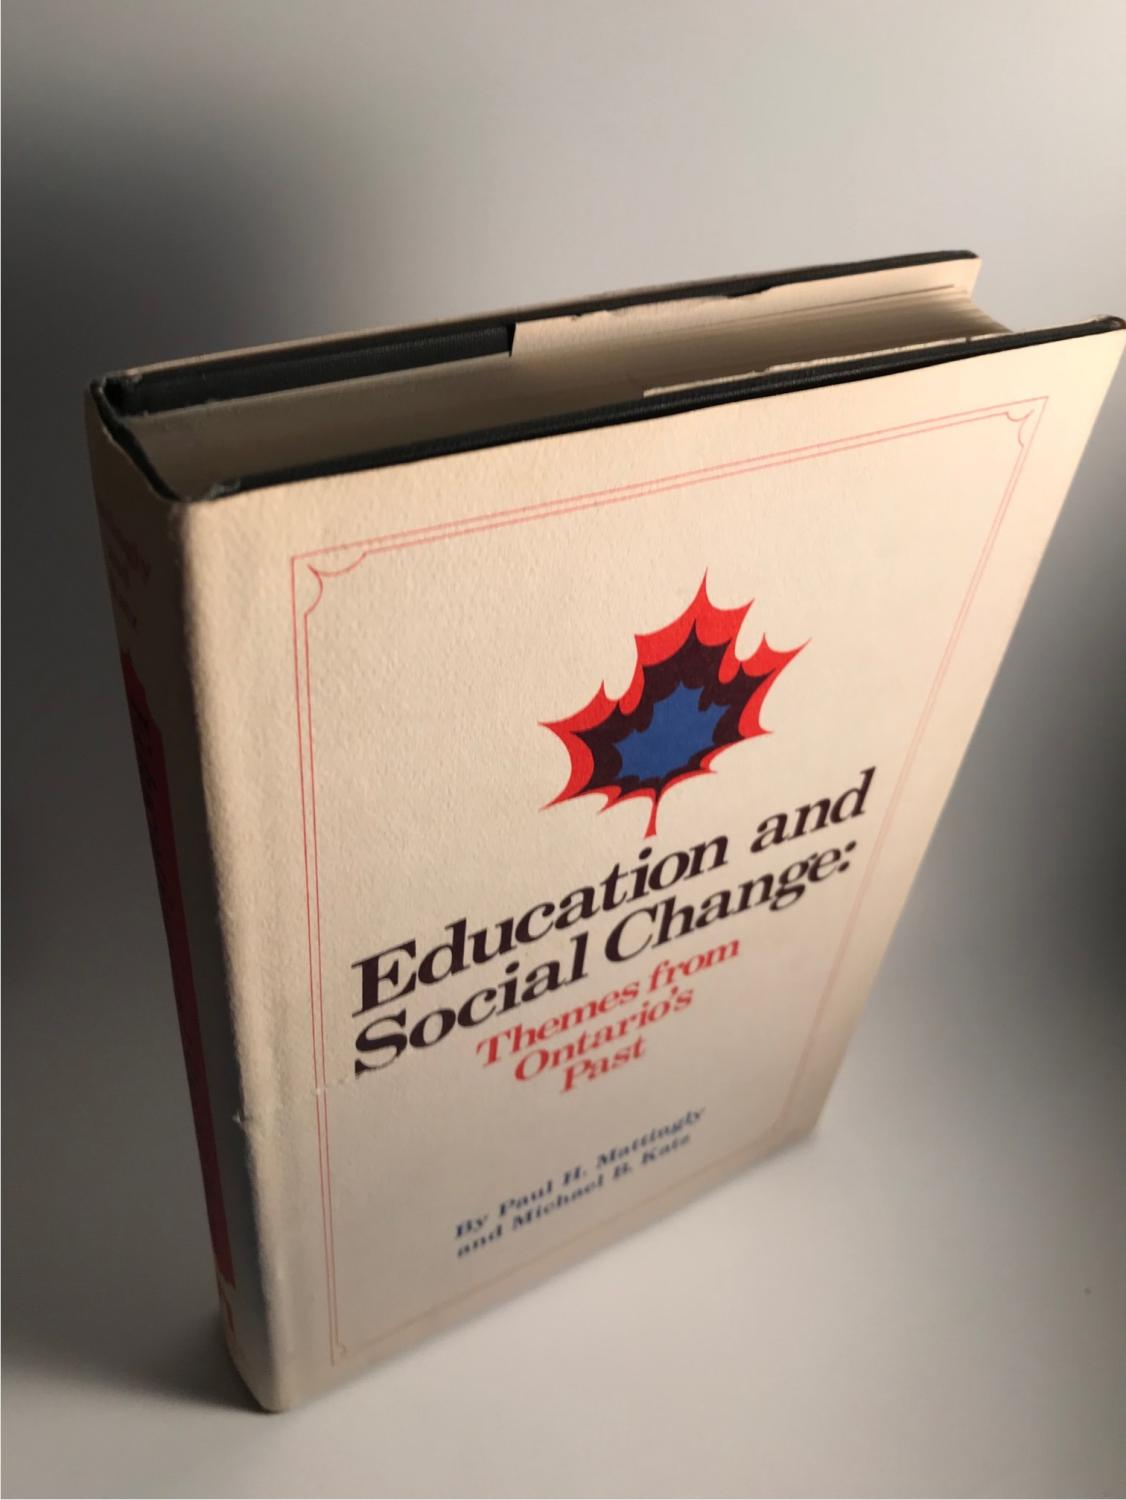 EDUCATION AND SOCIAL CHANGE: THEMES FROM ONTARIO'S PAST Mattingly, Paul H. and Katz, Michael B. Fine Hardcover